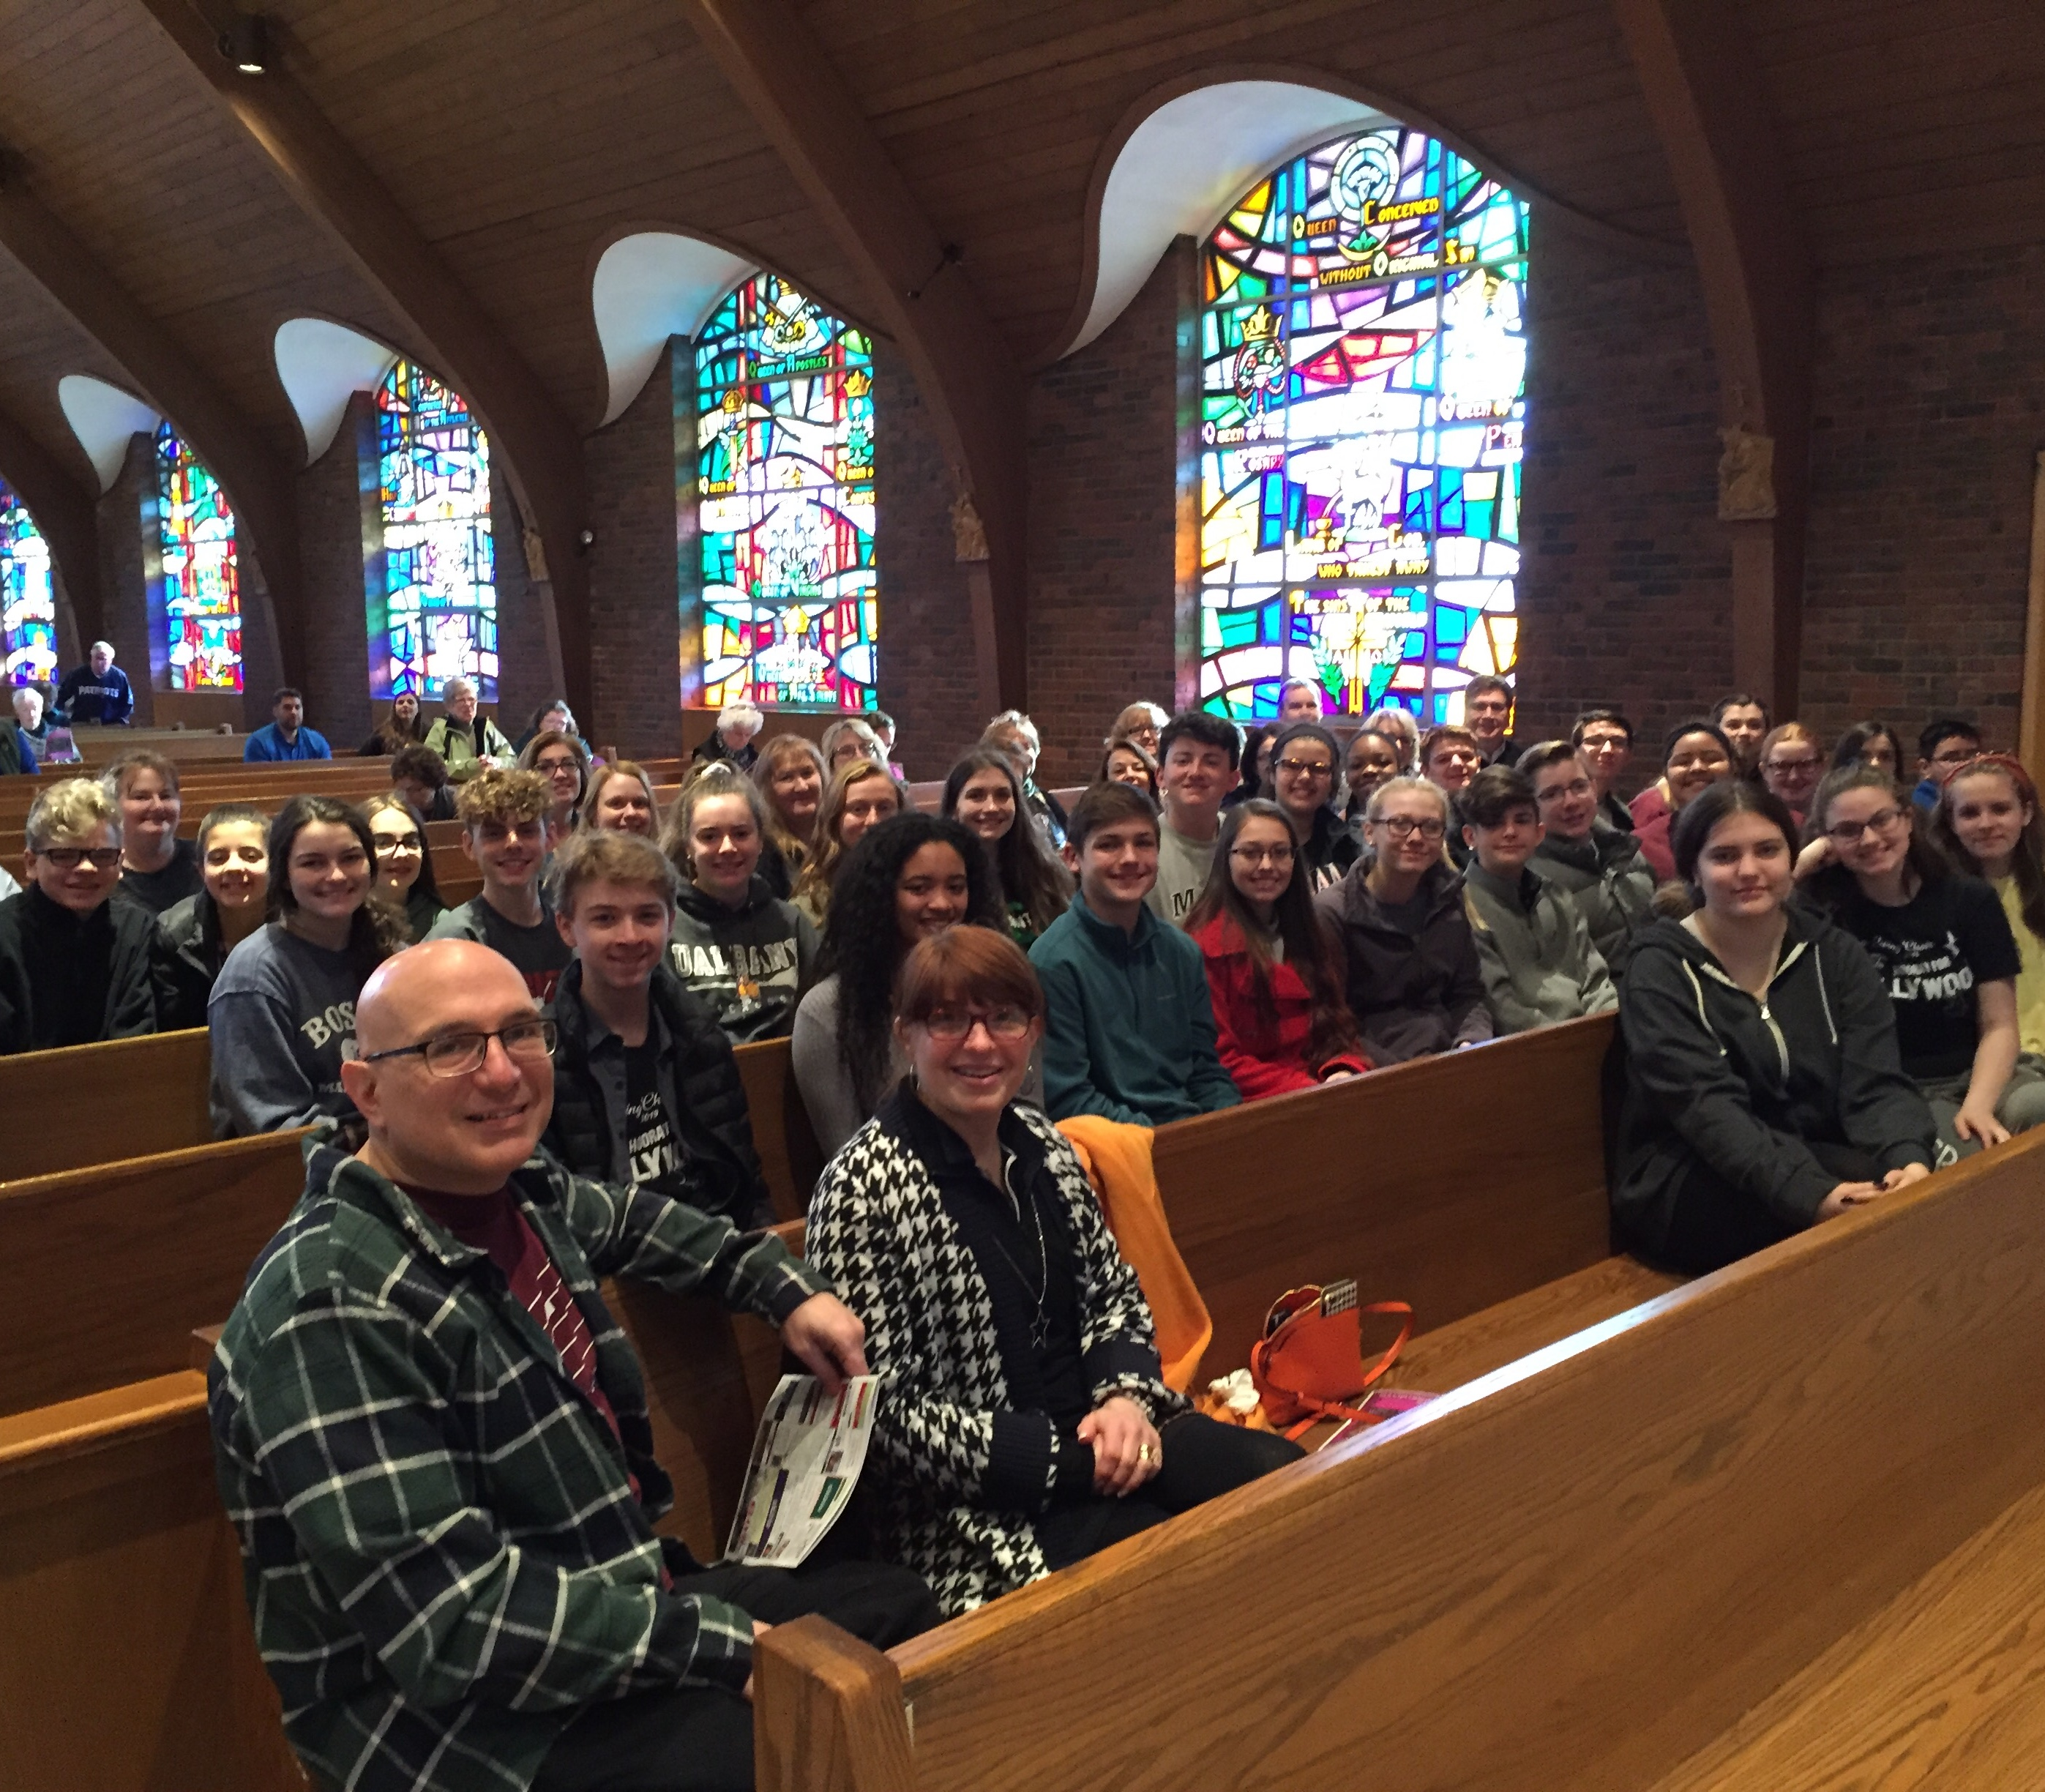 Students, teachers and parent chaperones from Seton Catholic Central High School attend 9:00 am Mass at Our Lady's before heading home to Binghamton NY. They won the Choral Competition at the Boston International Music Festival.